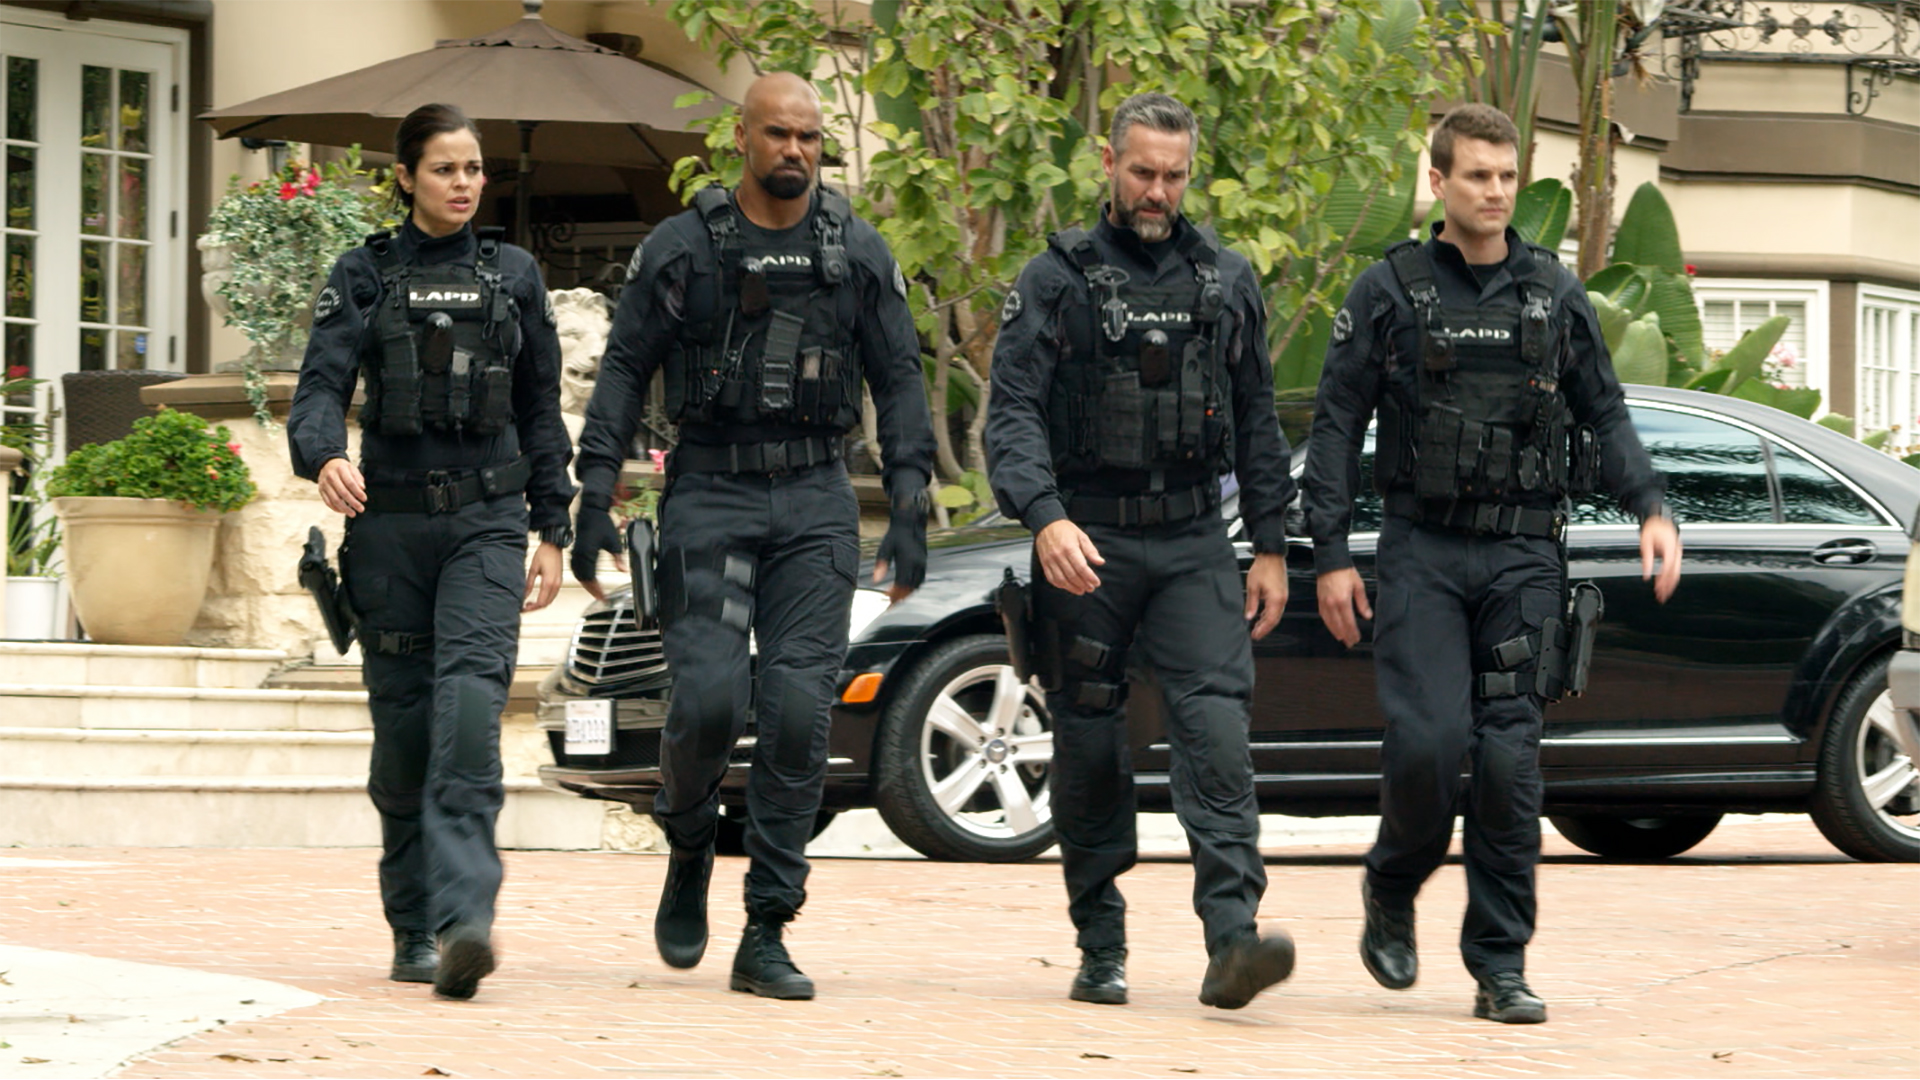 Cops TV Show: News, Videos, Full Episodes and More - TV Guide